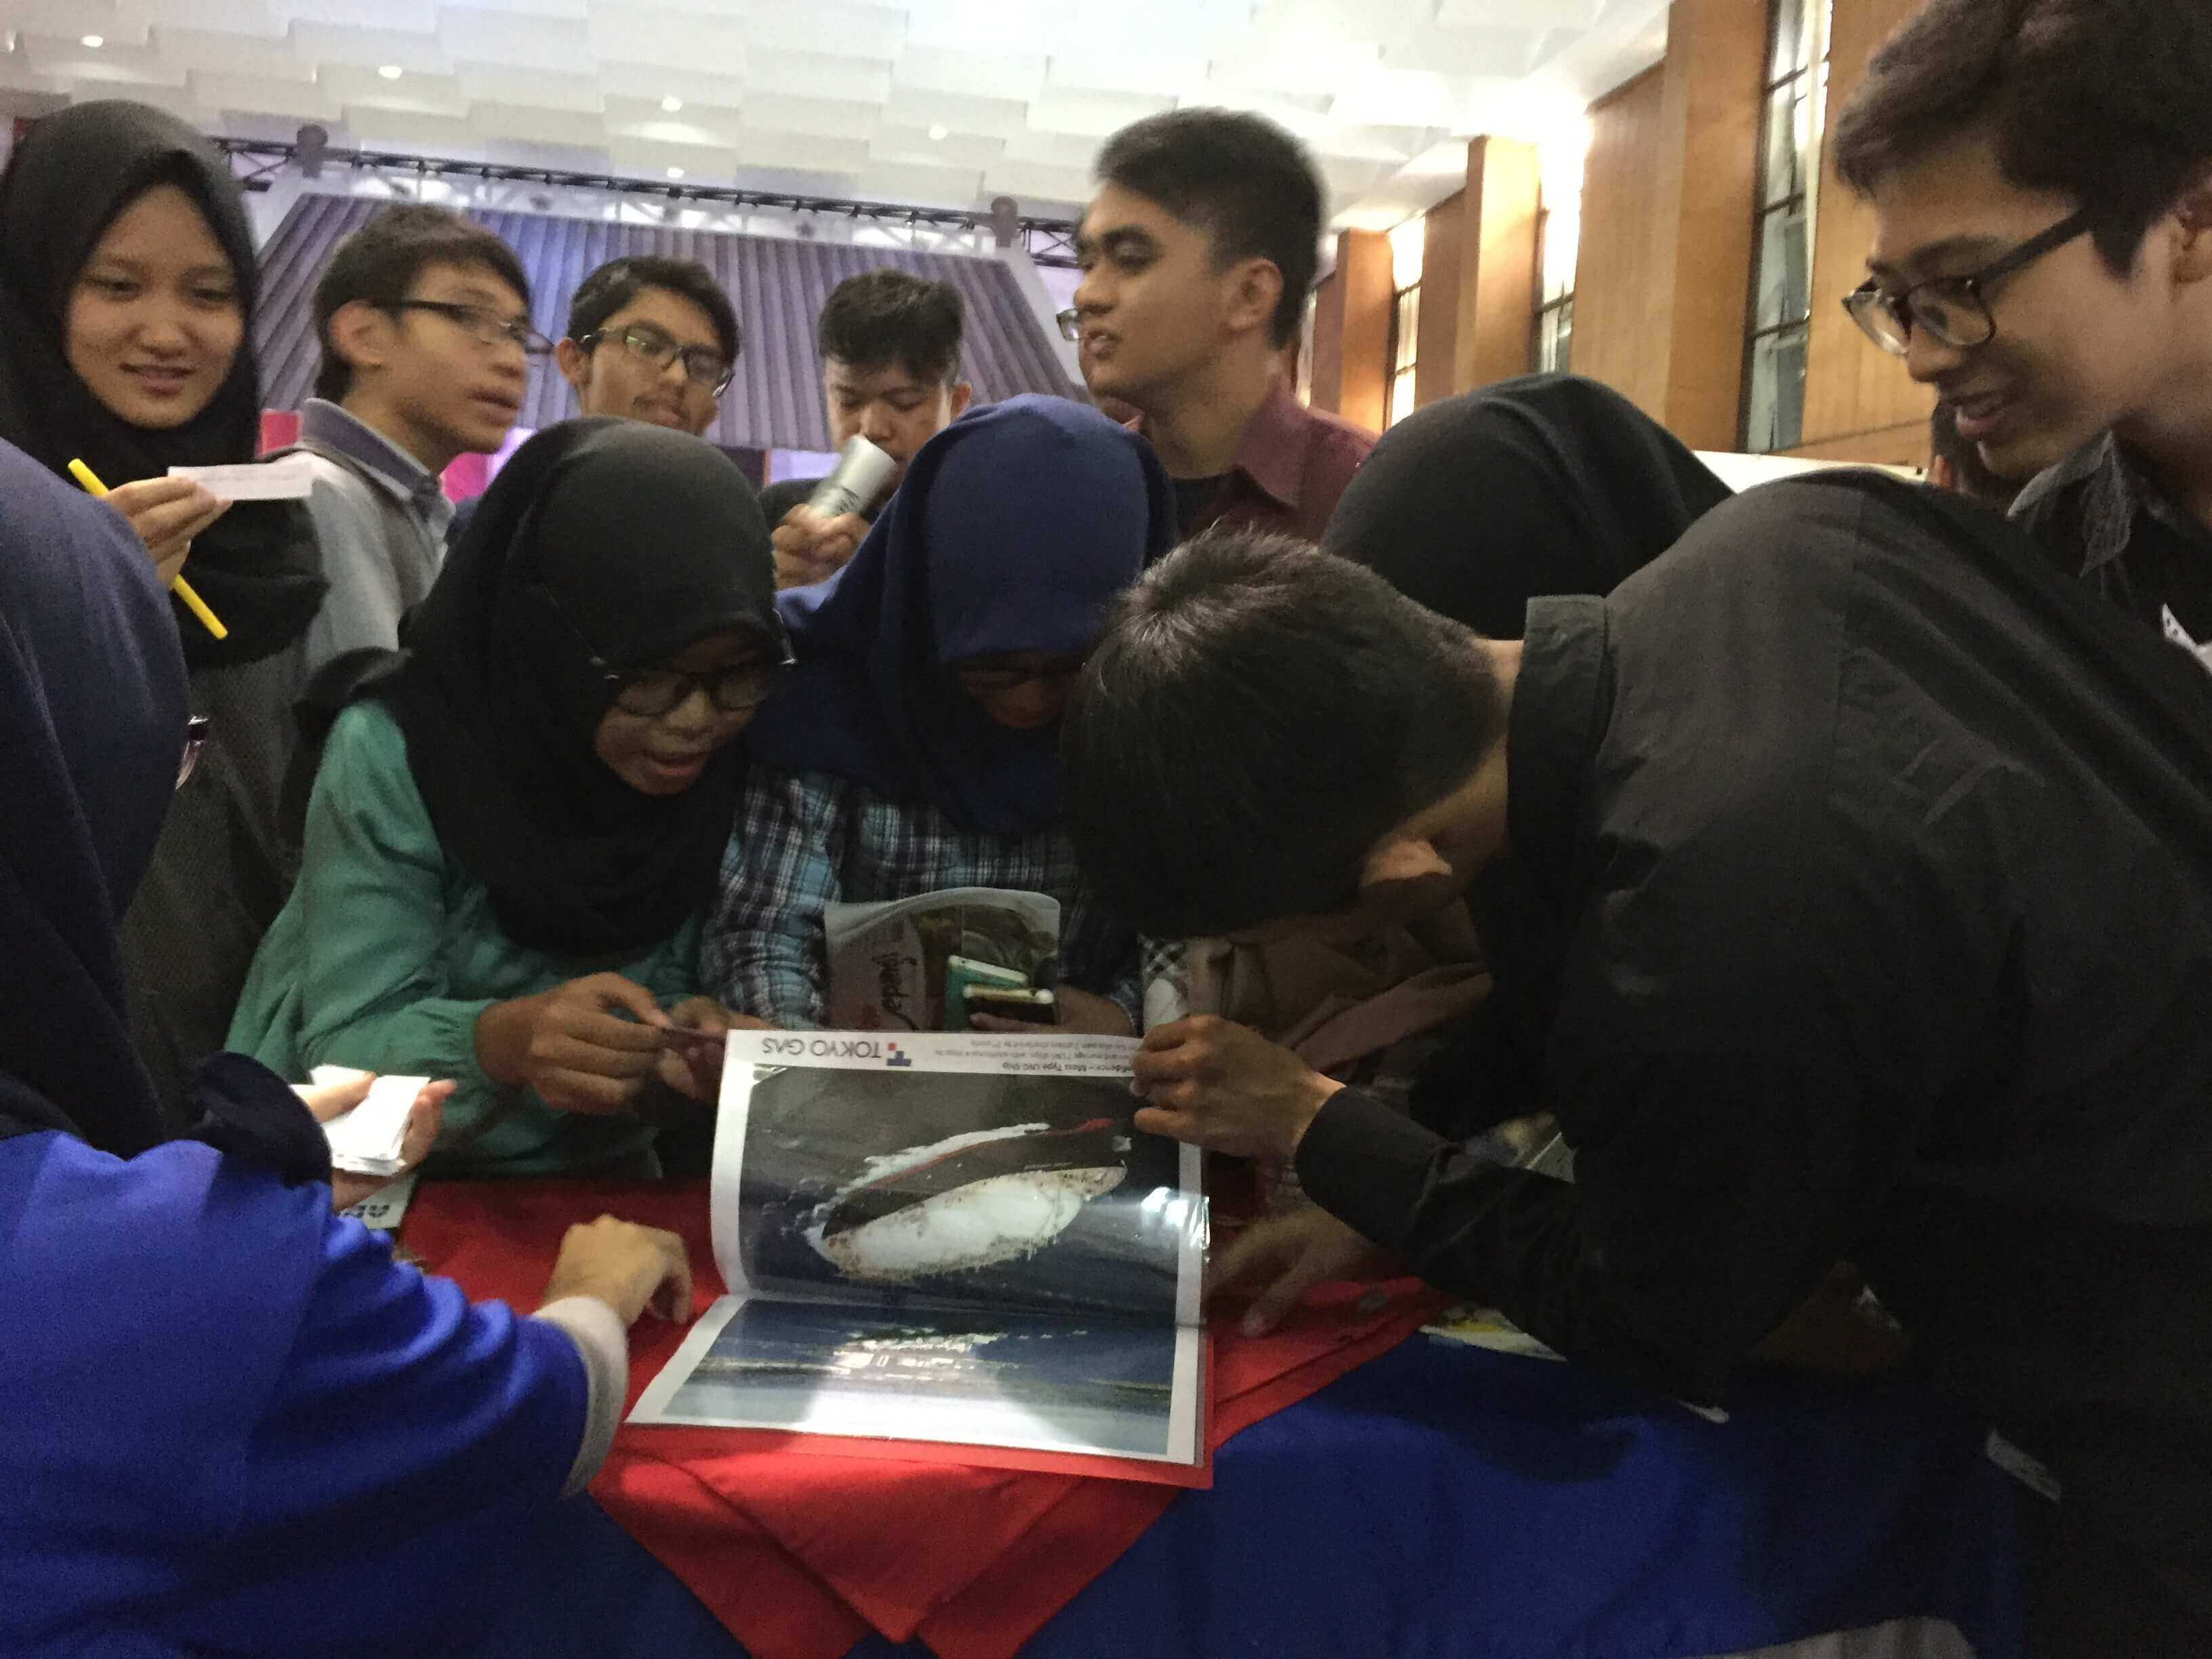 Students attracted to our booth